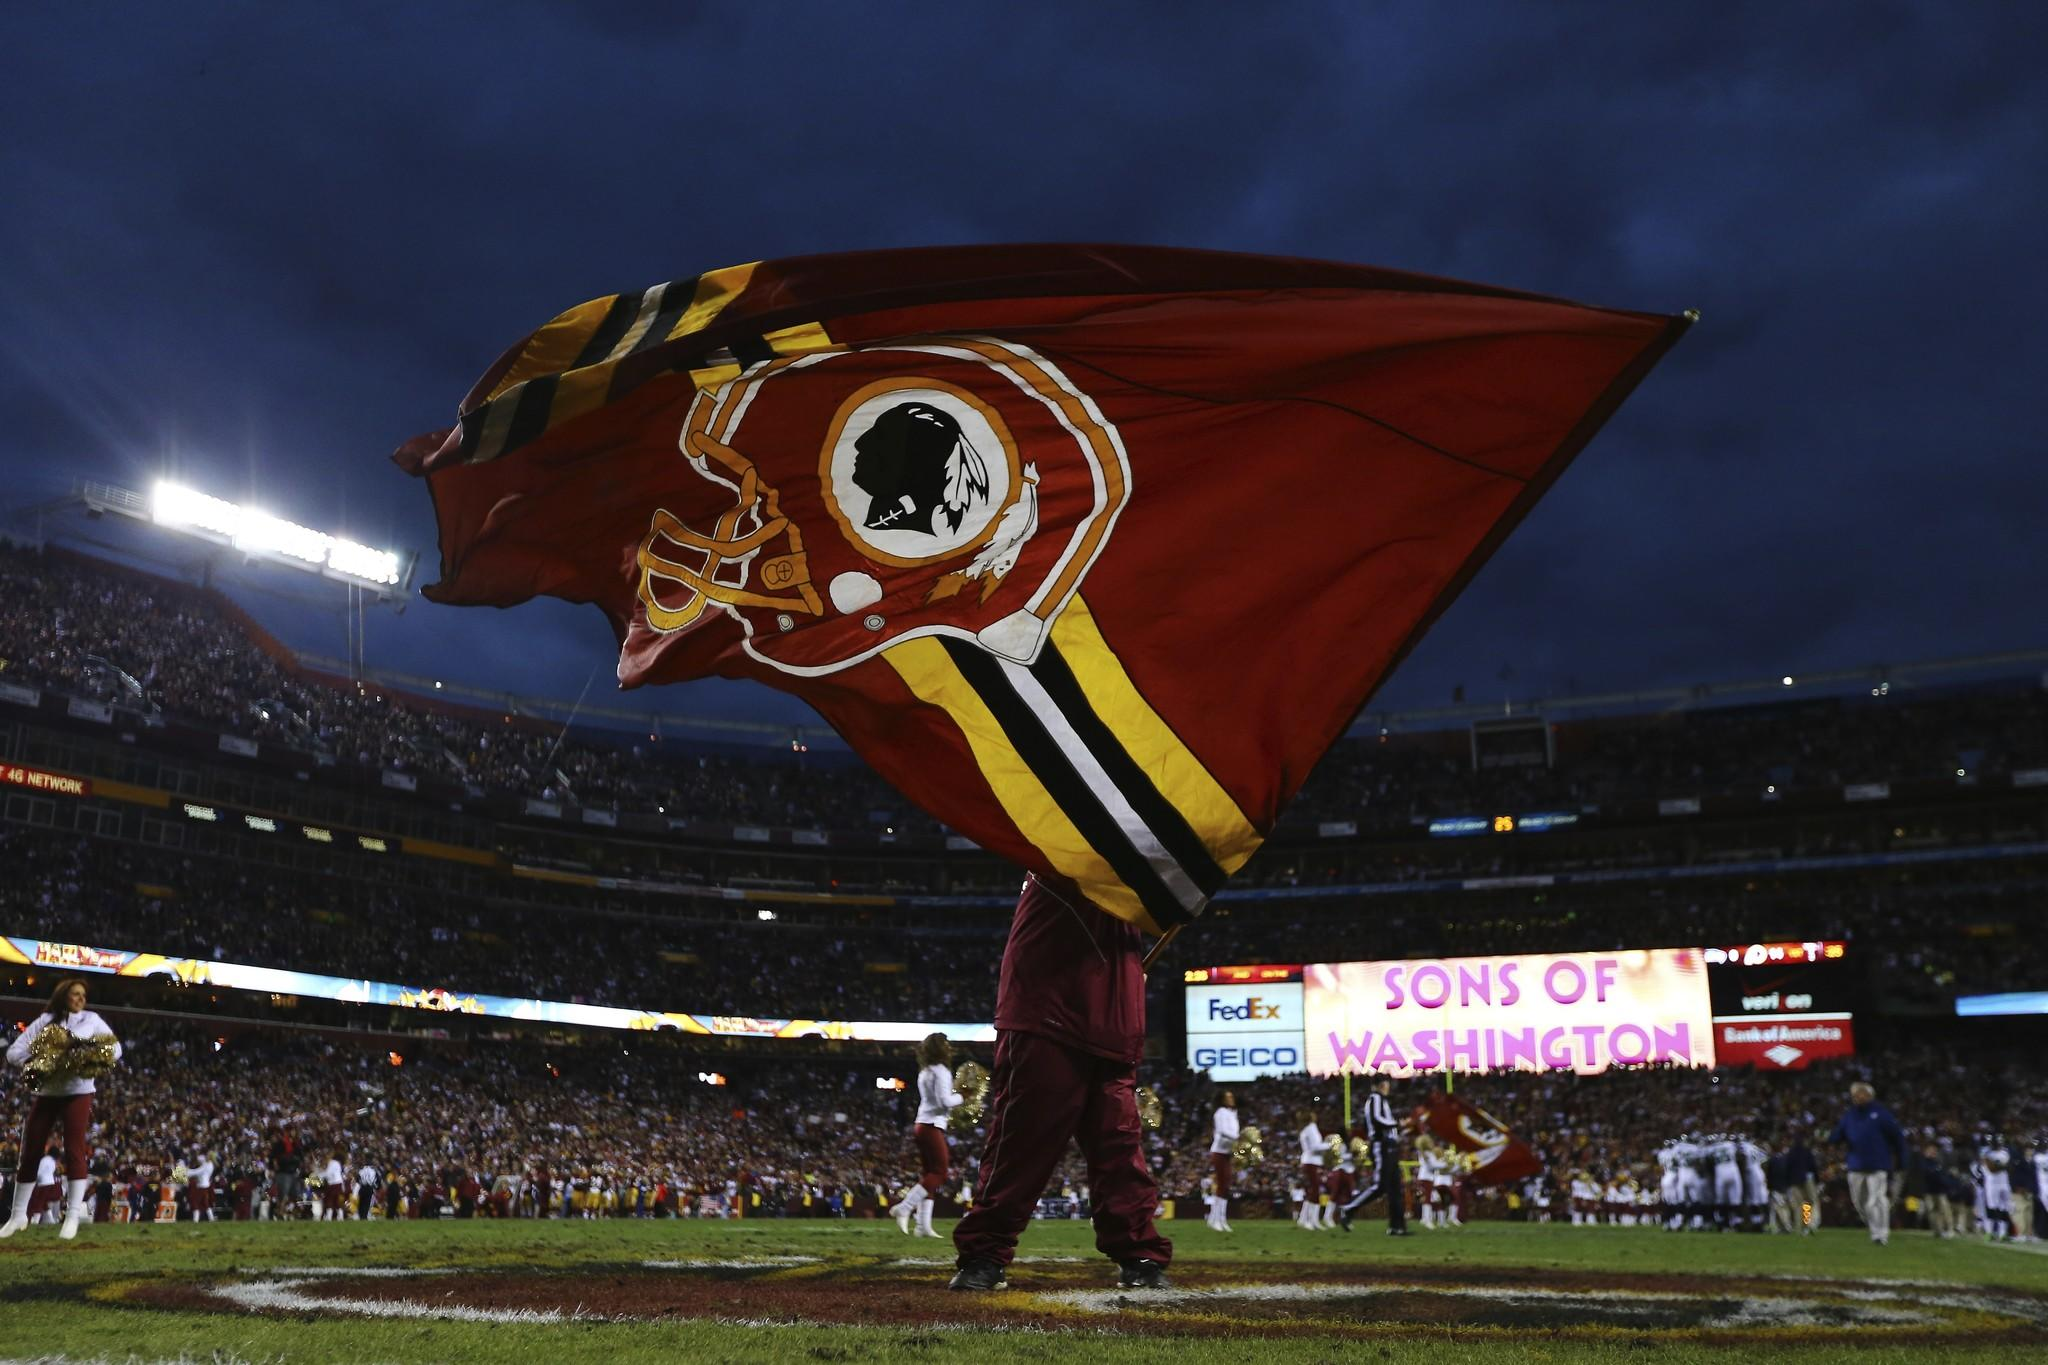 A Washington Redskins flag is waved prior to a game in early 2013.